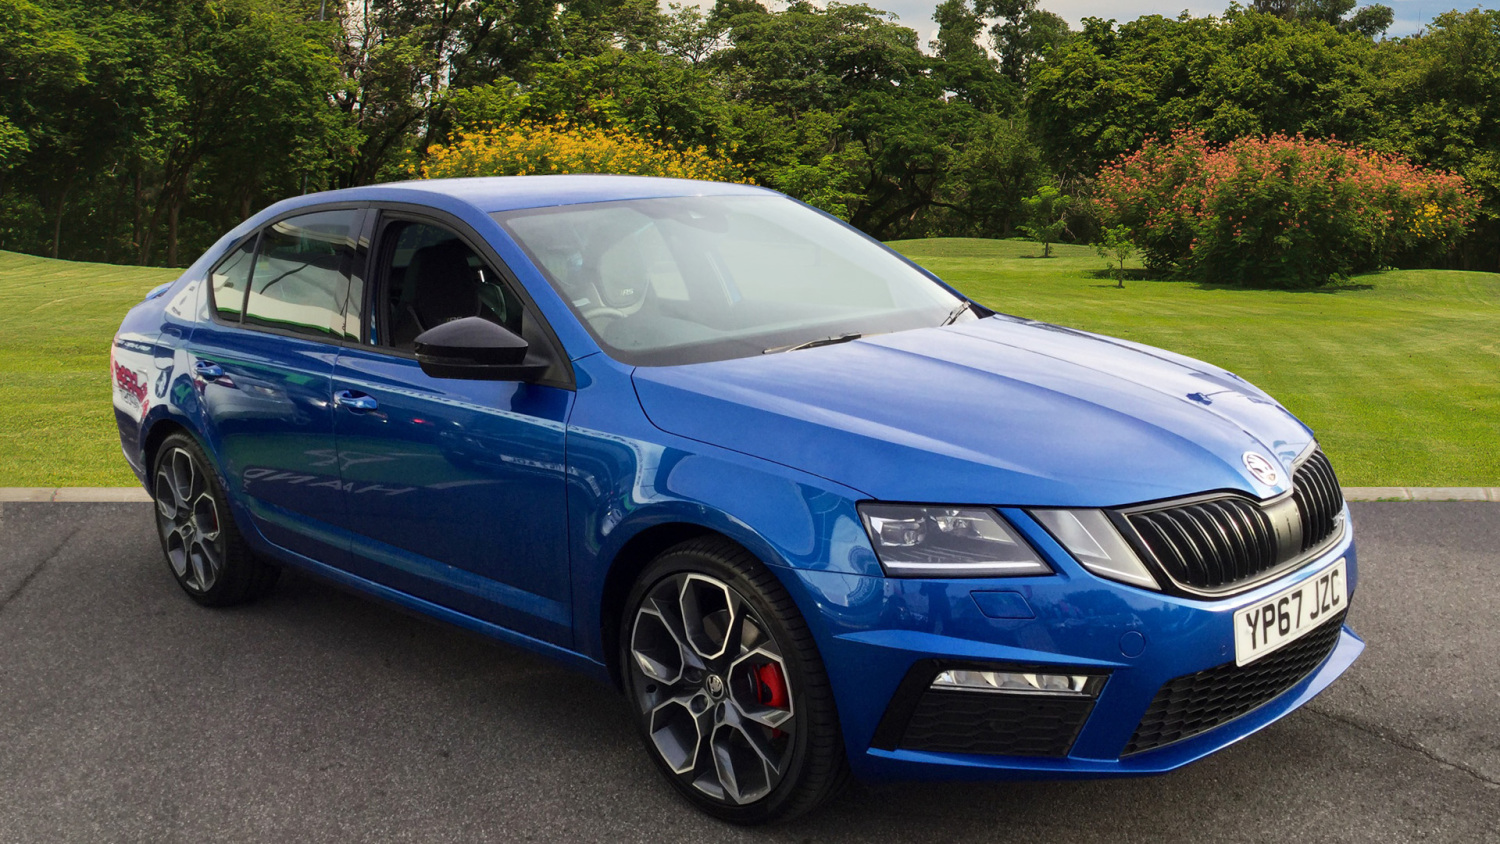 used skoda octavia 2 0 tdi cr vrs 4x4 5dr dsg diesel hatchback for sale bristol street motors. Black Bedroom Furniture Sets. Home Design Ideas